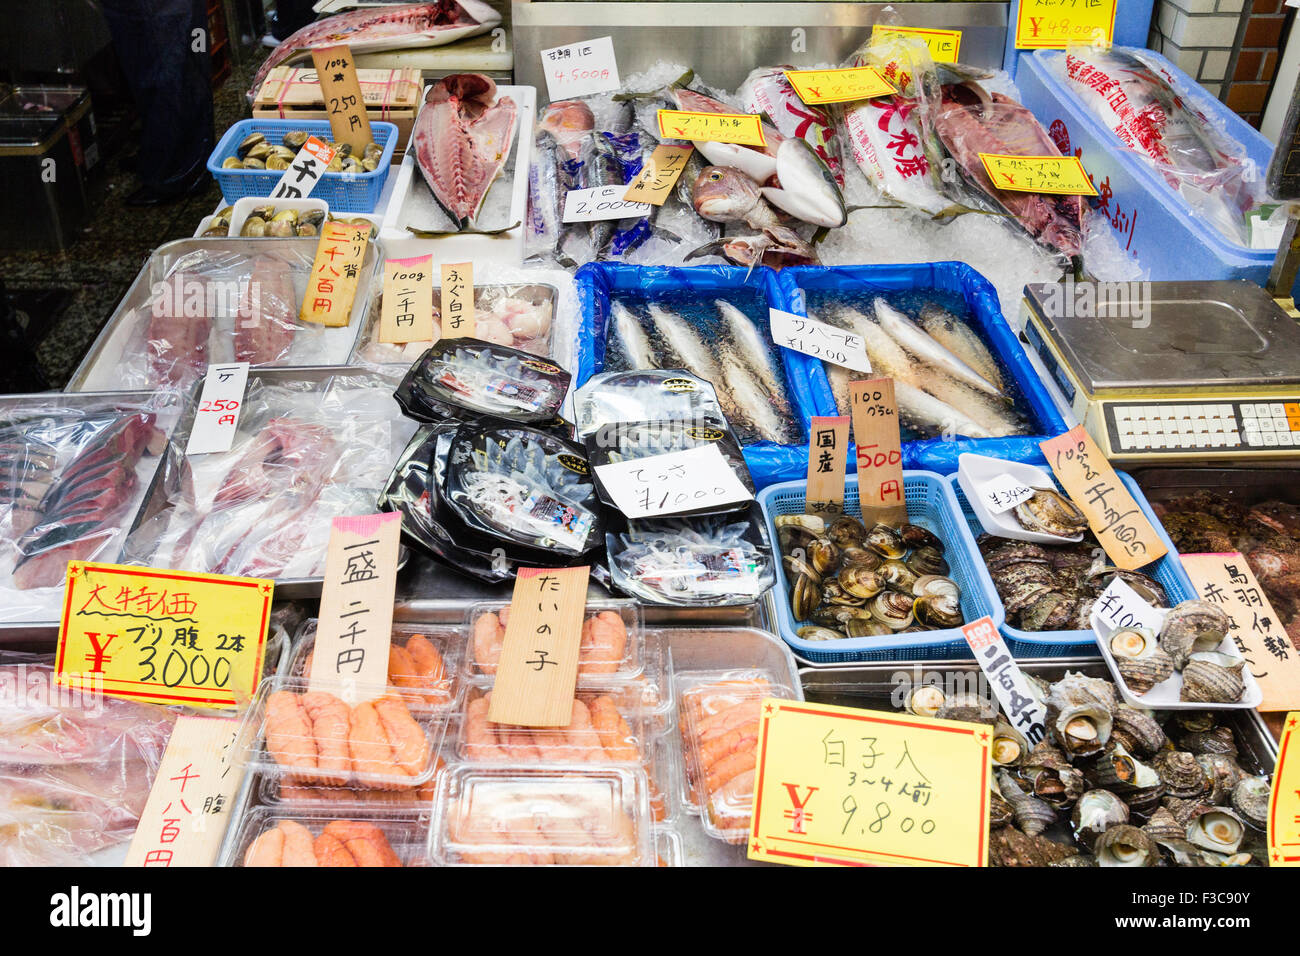 Trays of fishfood on display on stall at Kuromon Ichiba food market in Osaka. Whole fish, prepared fish fillets - Stock Image